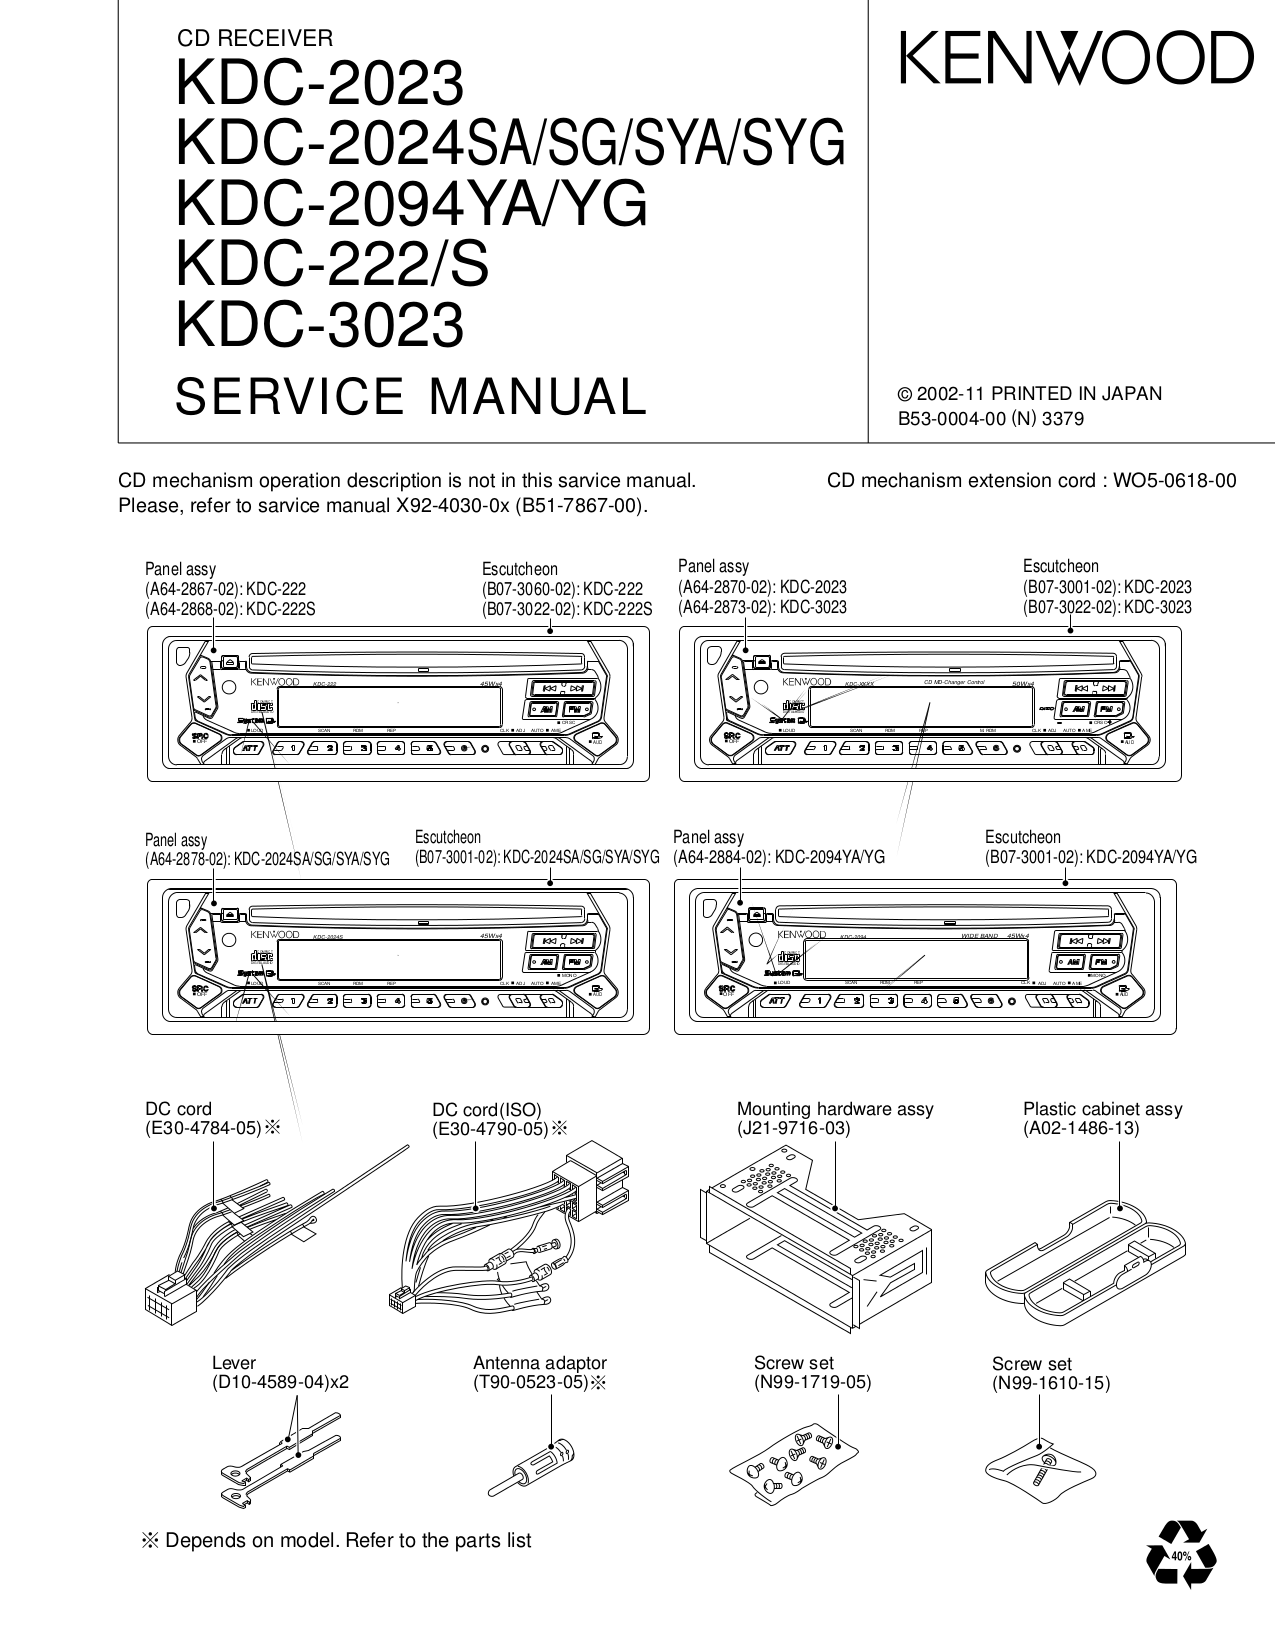 kdc2023 2024 2094 222 3023.pdf 0 pdf manual for kenwood car receiver kdc 222 kdc-222 wiring at nearapp.co